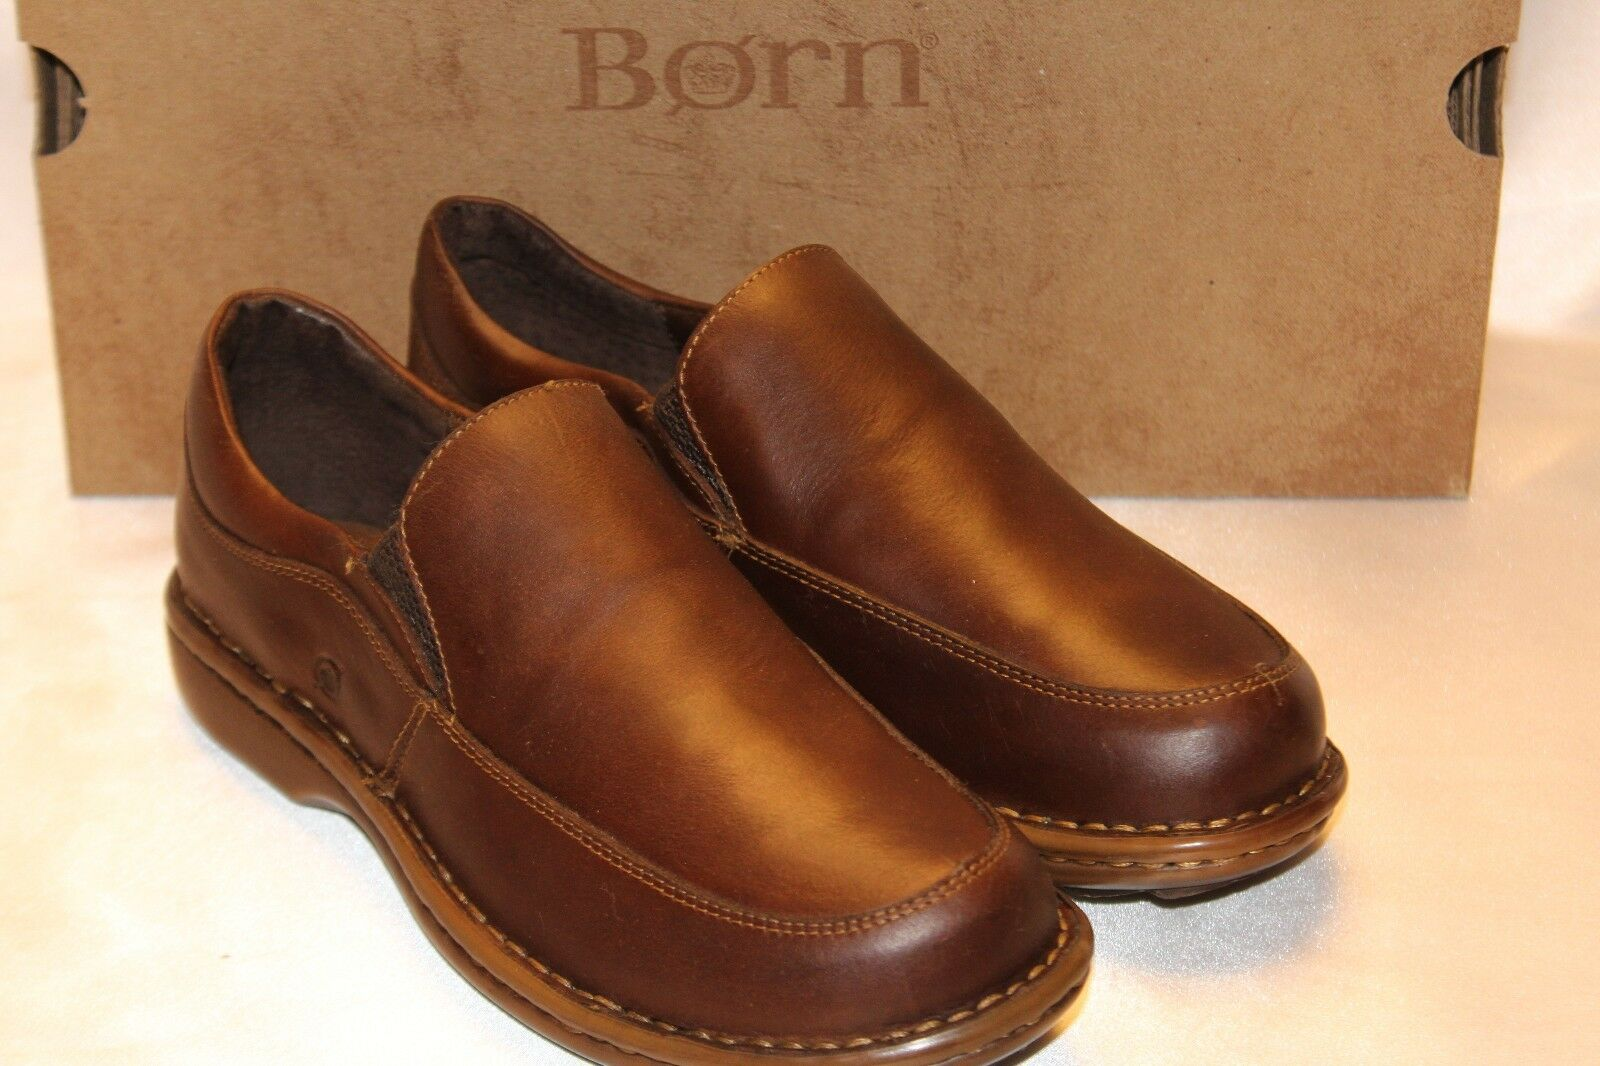 NEW  NIB  BORN Dk Brown Leather CACIE Comfort Cushioned Slip On Loafer Sz 6 6.5